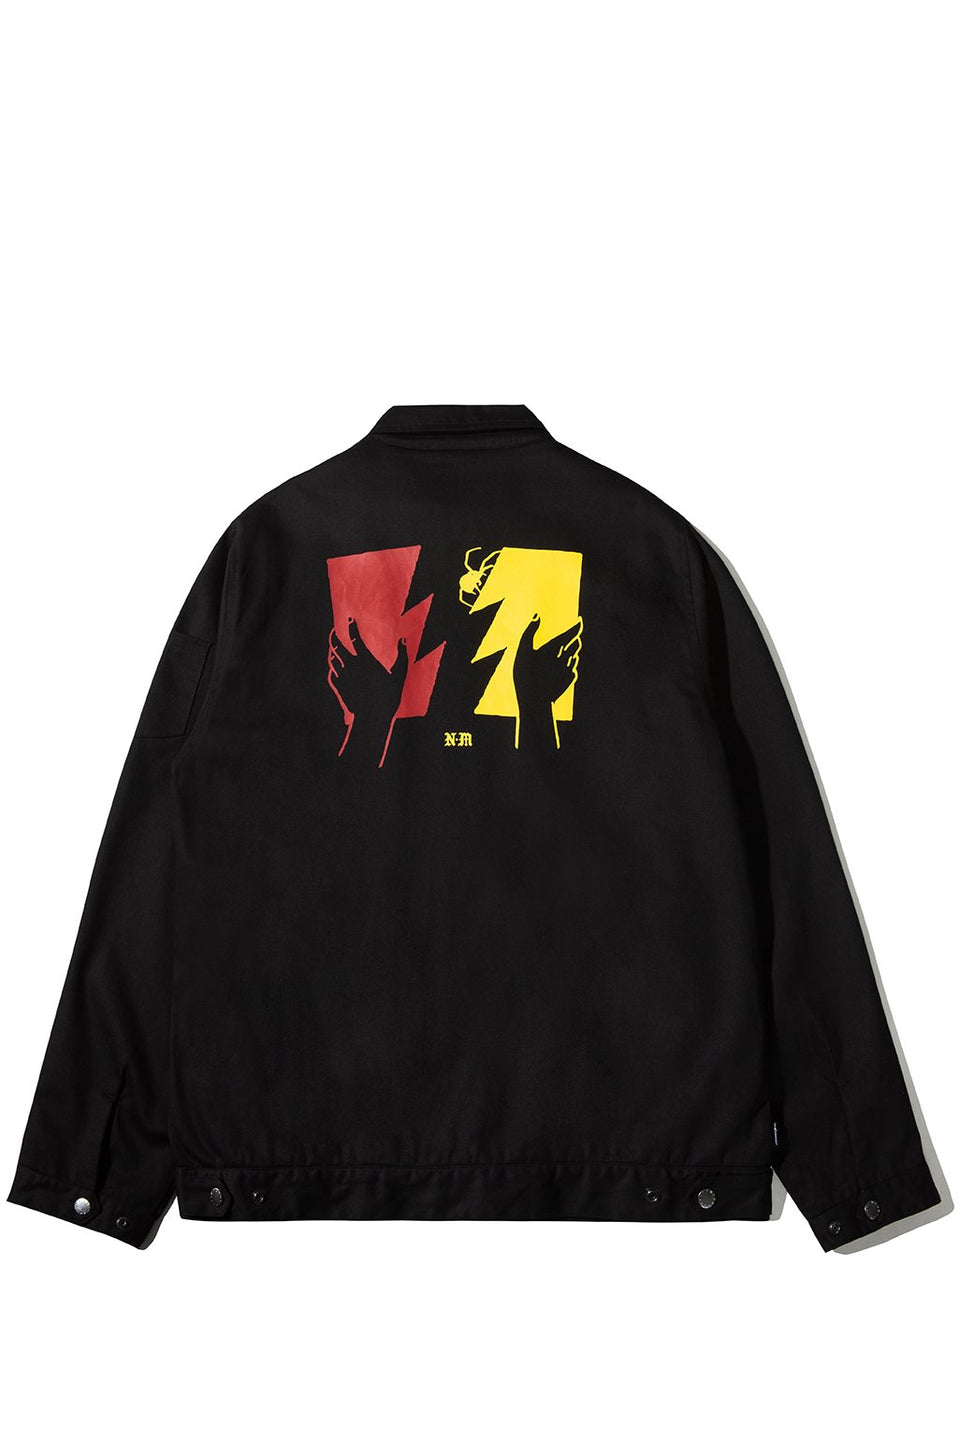 Flag Tear Jacket